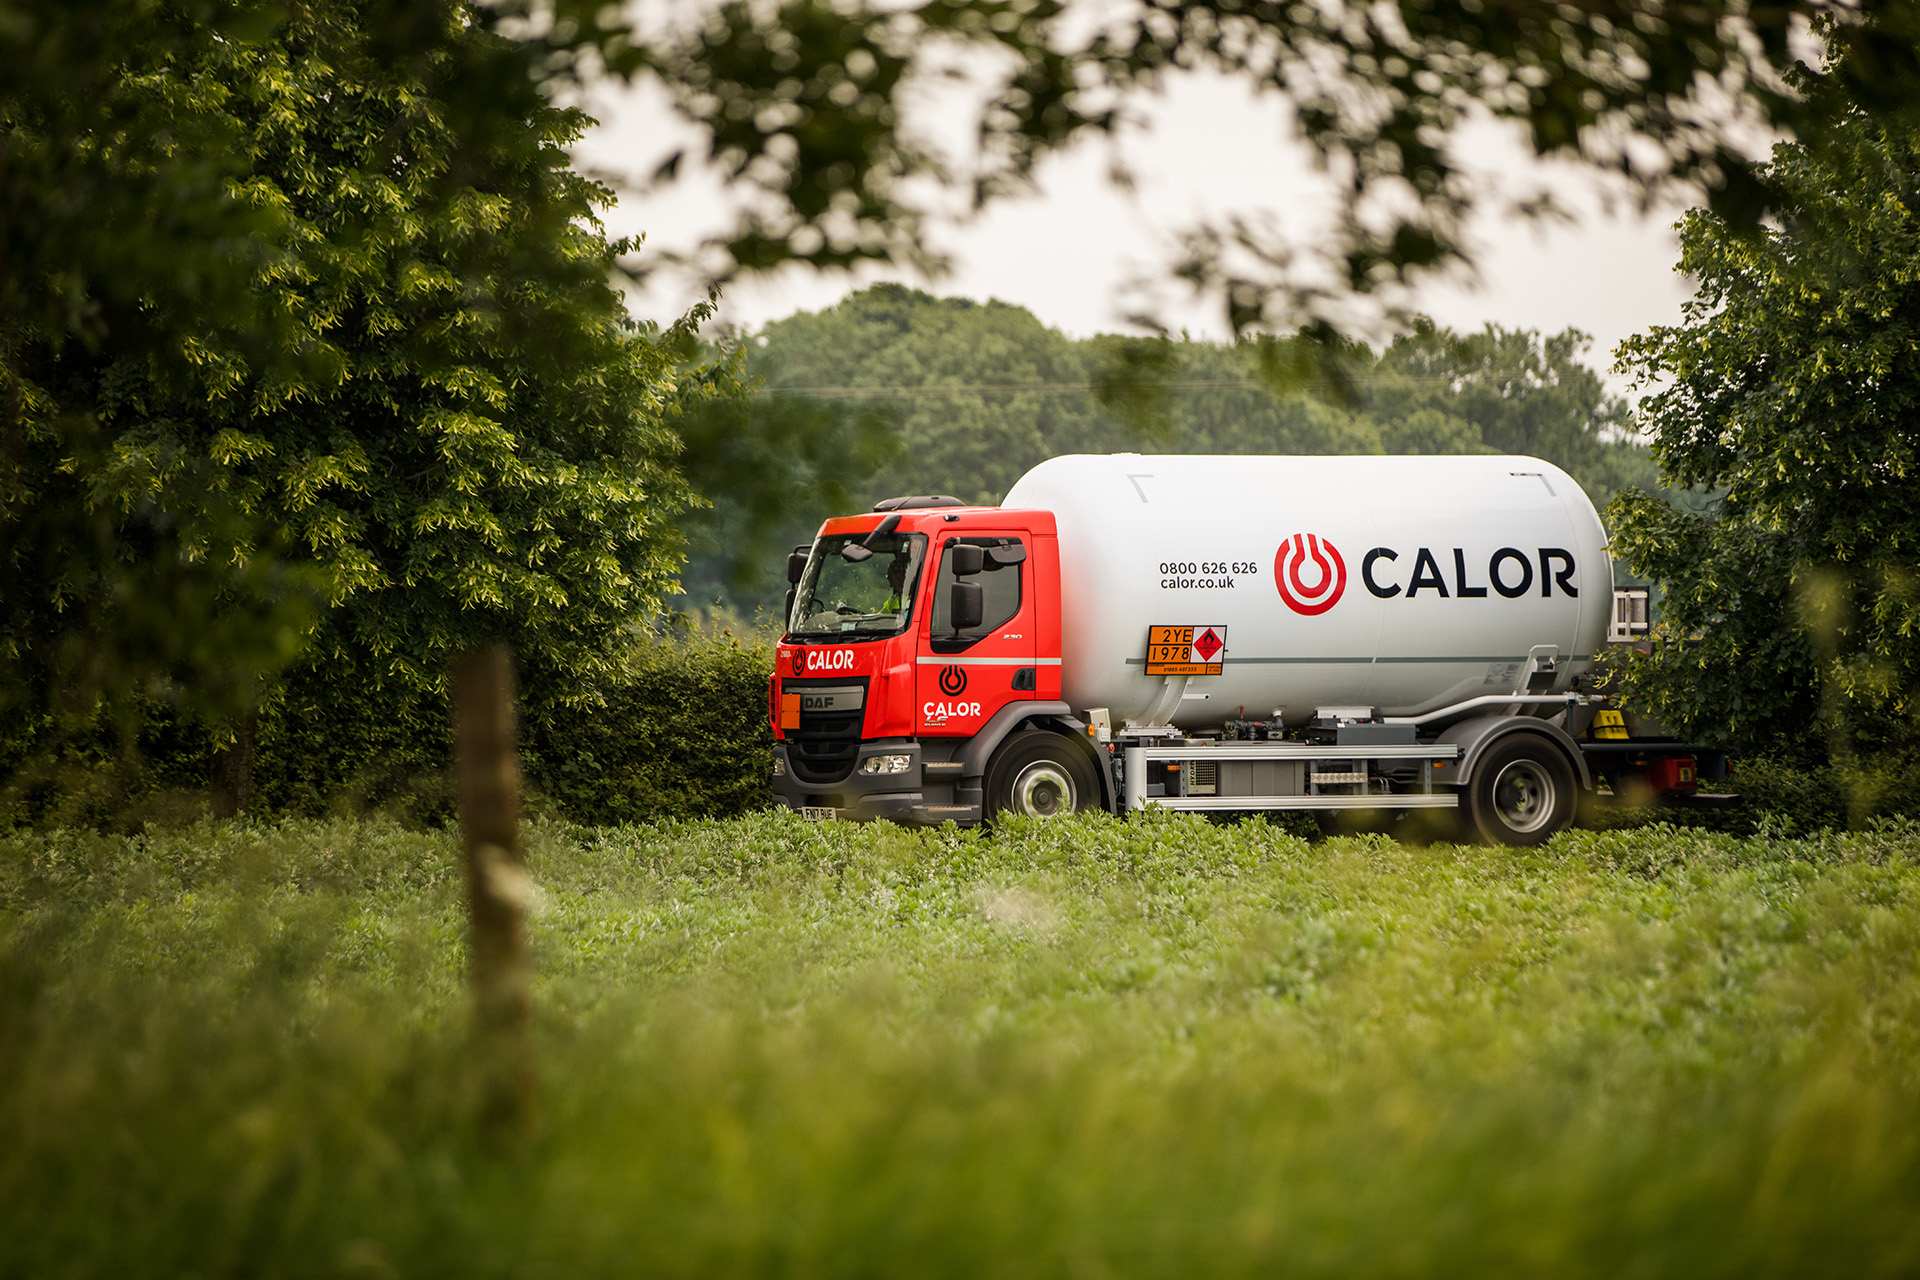 A side view of a Calor lorry driving through the countryside